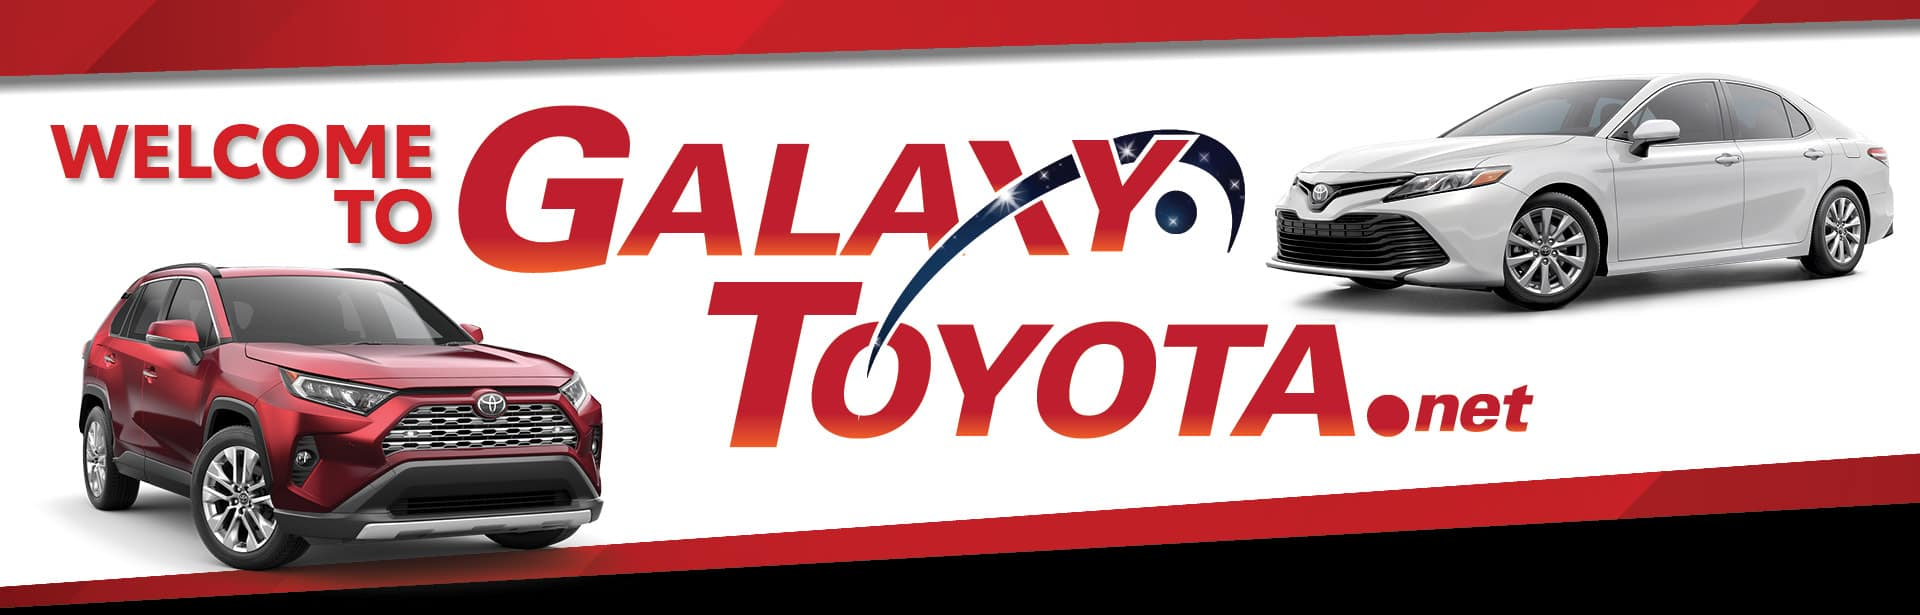 Toyota Dealer Nj >> Eatontown Nj Toyota Dealer Serving Freehold Toms River Long